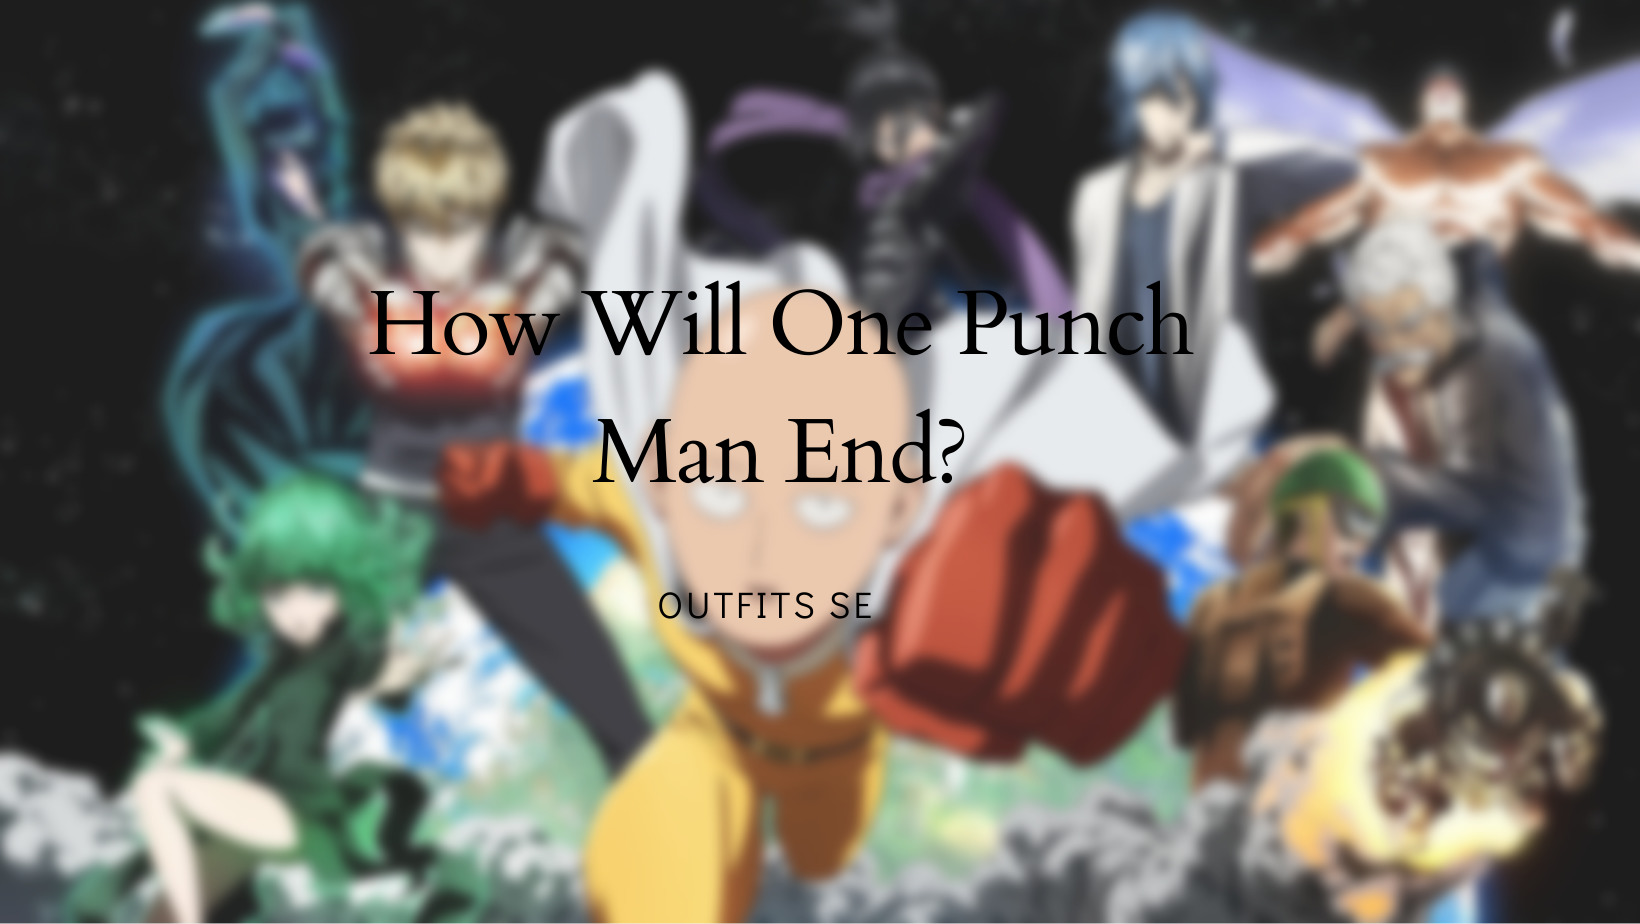 One Punch Man Ending